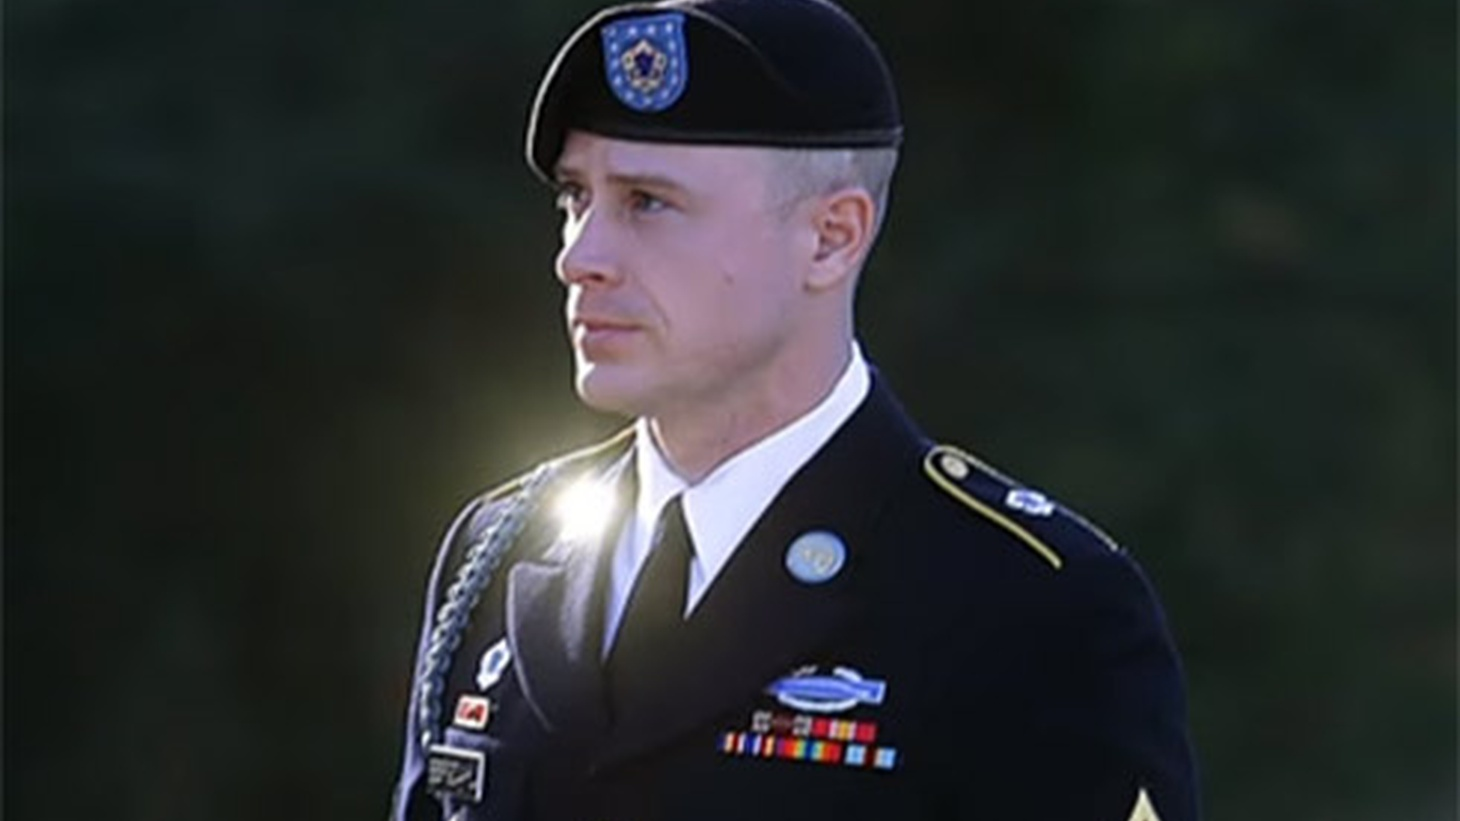 At Fort Bragg, North Carolina today, a shocked courtroom heard a military judge sentence Sergeant Bowe Bergdahl, who pled guilty to deserting his post in Afghanistan and faced life behind bars. The prosecution asked for 14 months. Instead, Bergdahl received a dishonorable discharge, a fine of $10,000 and no jail time at all.